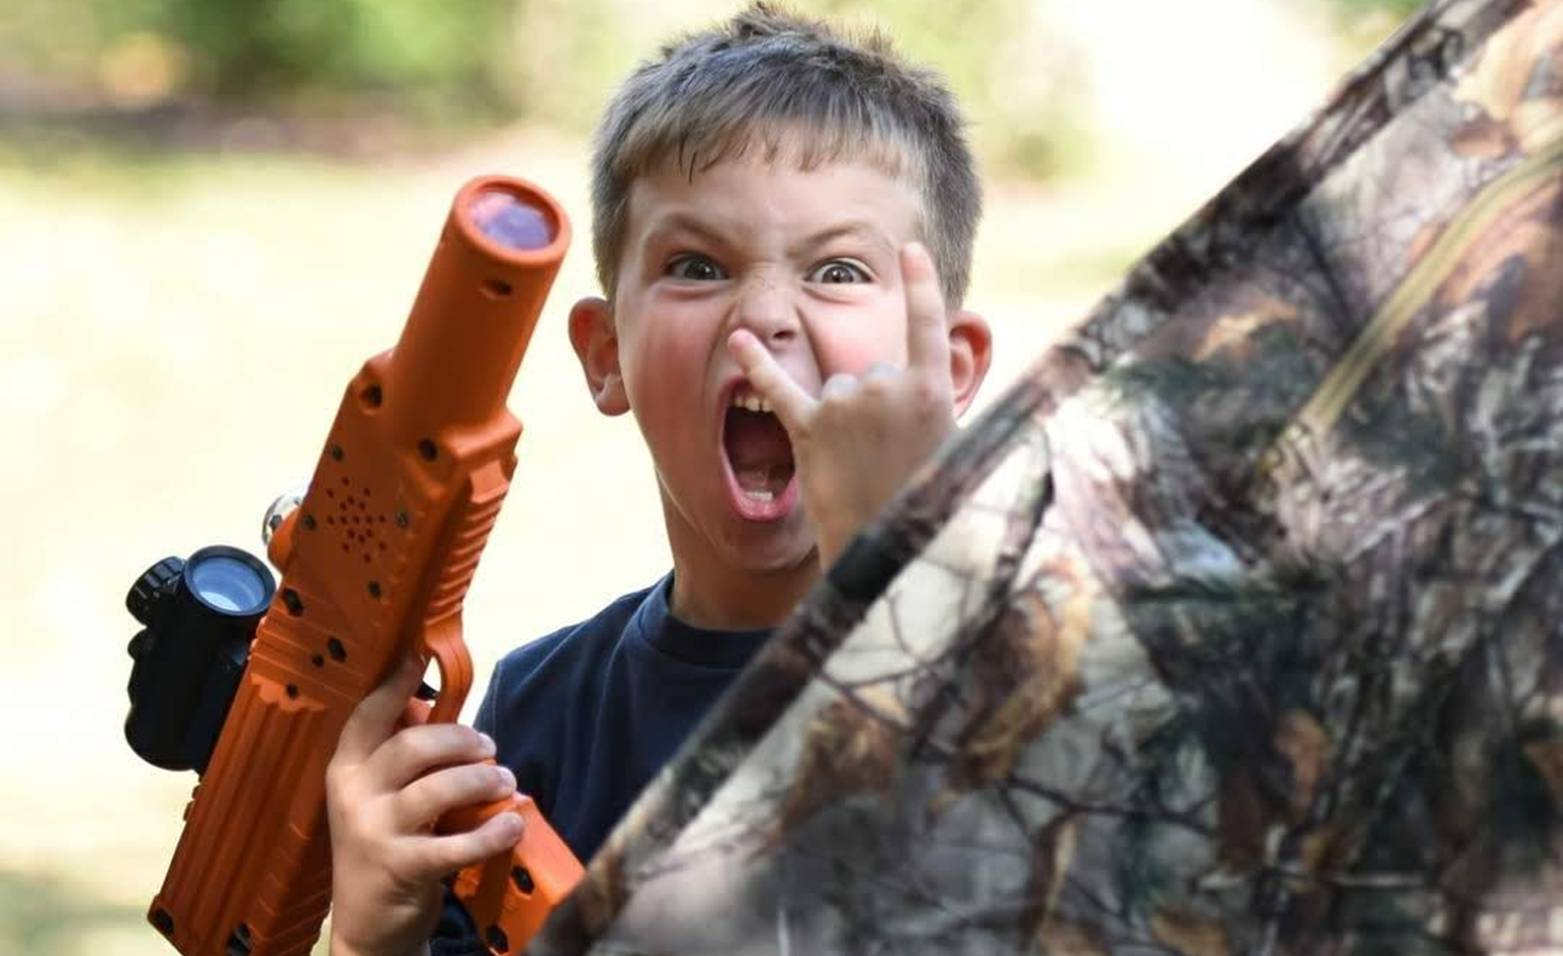 Laser tag birthday party in Chicago and Northwest Indiana